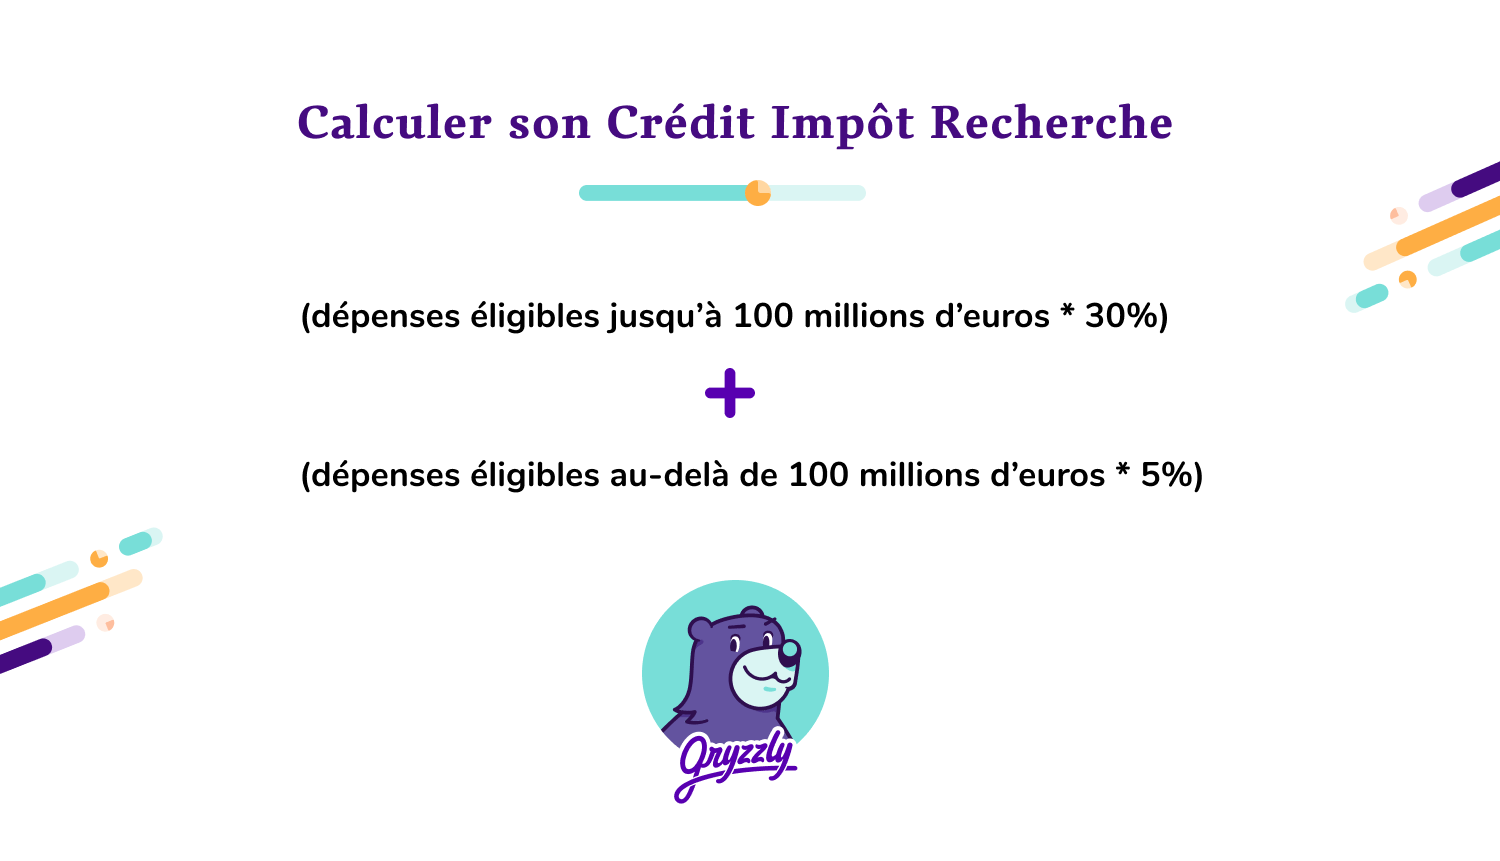 Calculer son cir avec gryzzly